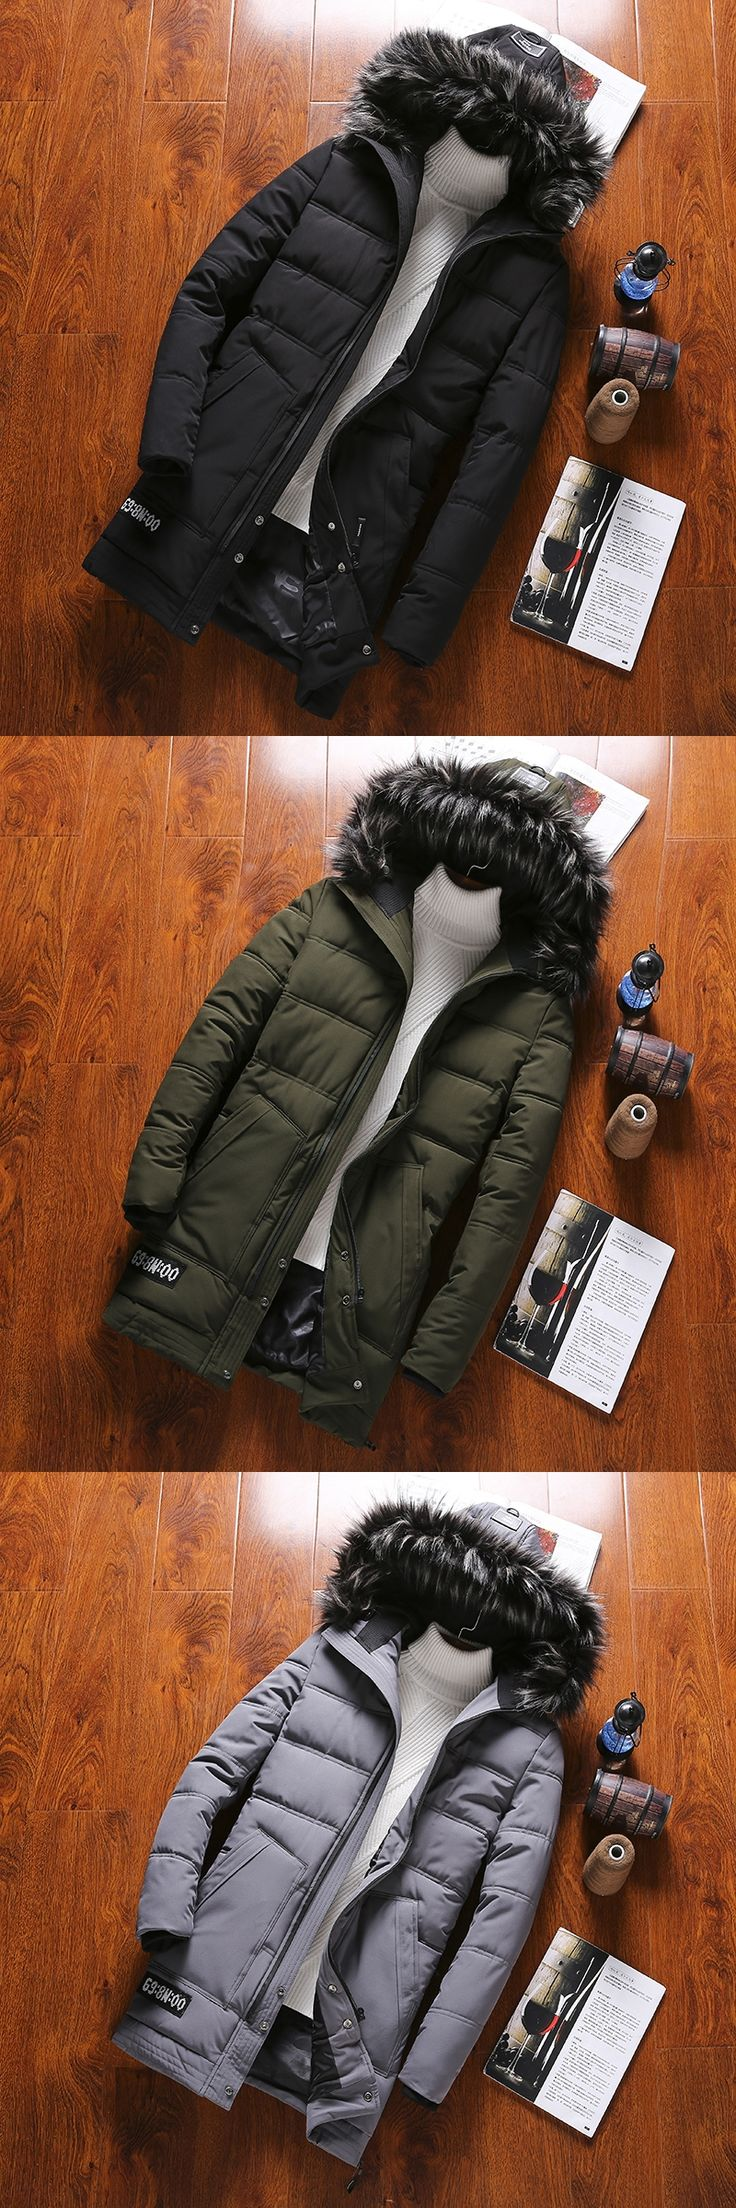 2017 Autumn And Winter New Trends Youth Style Small Fresh Casual Men's Long Coat Warm Thickened Fashion Tide Fur Collar Jacket